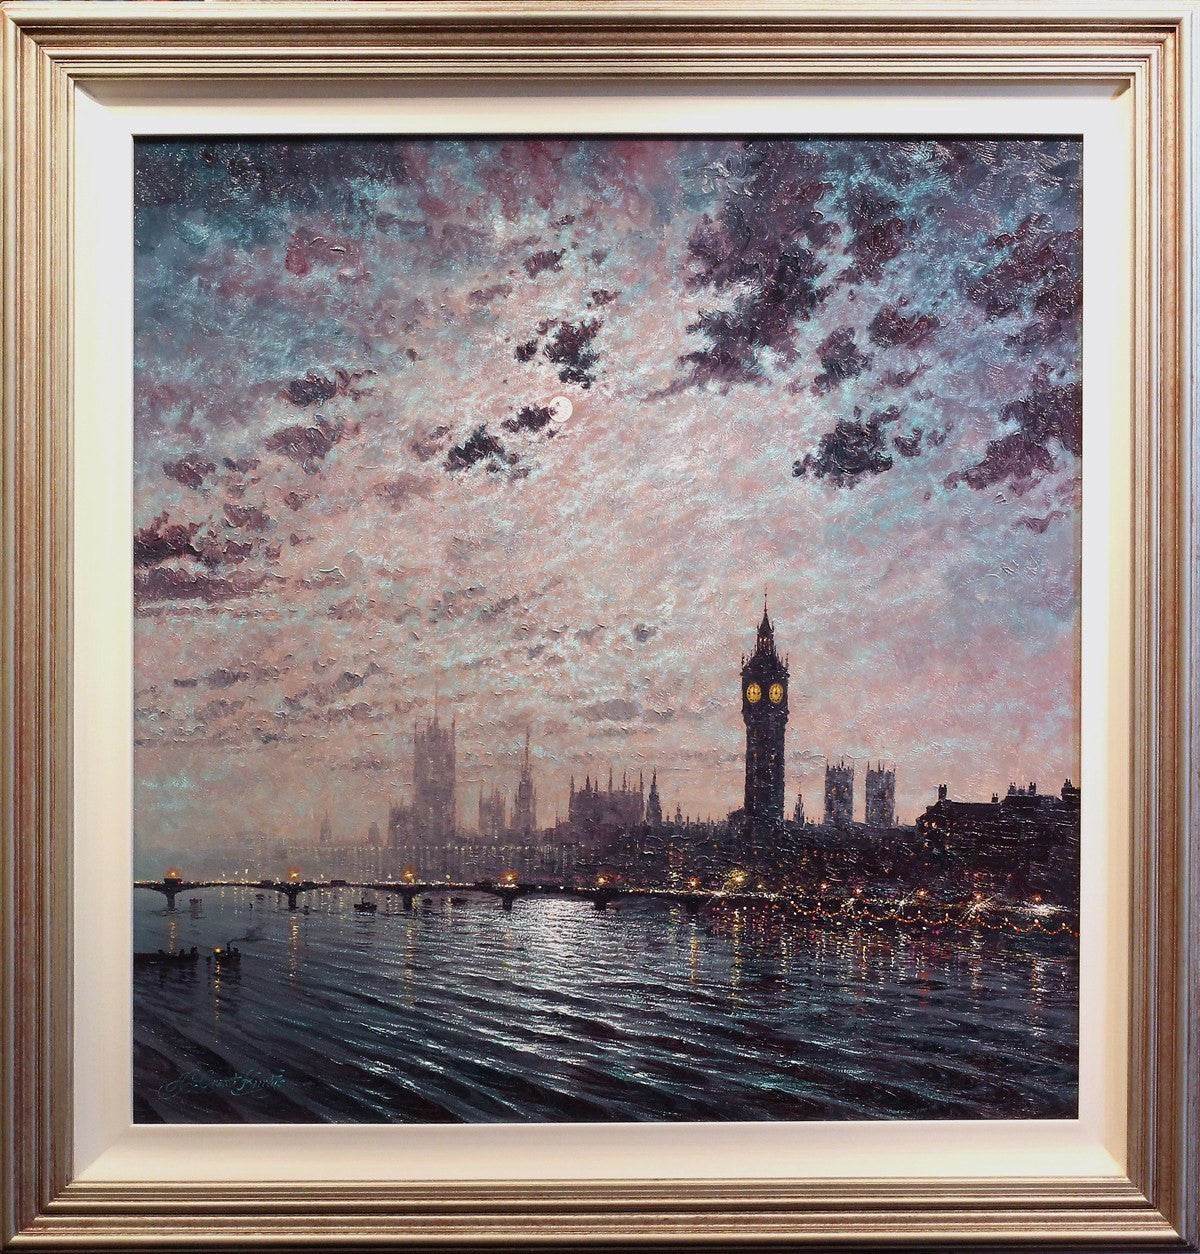 Westminster Chimes at Midnight - SOLD Andrew Grant Kurtis